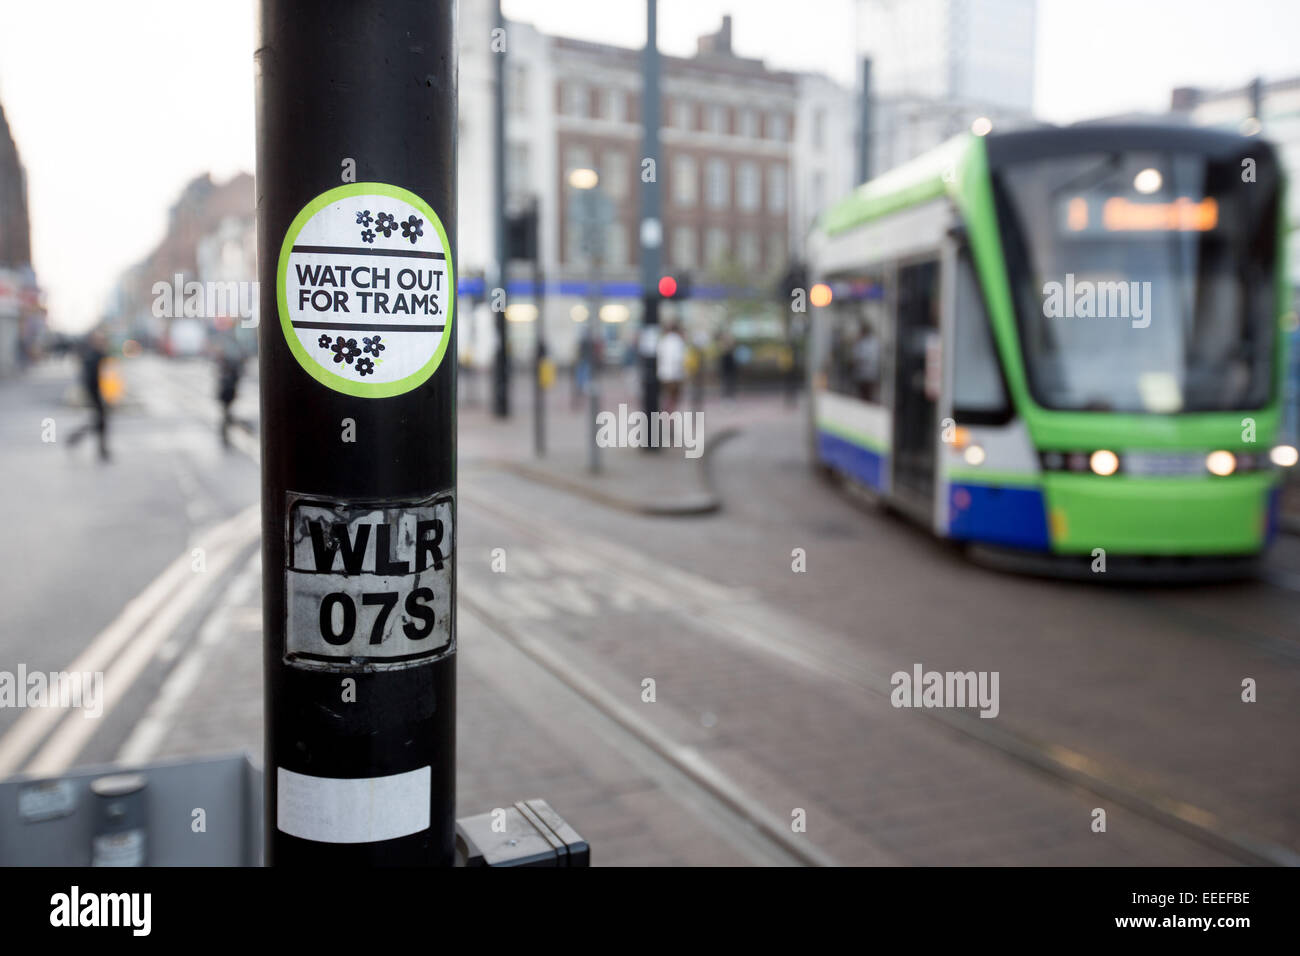 Watch out for trams sticker - Stock Image